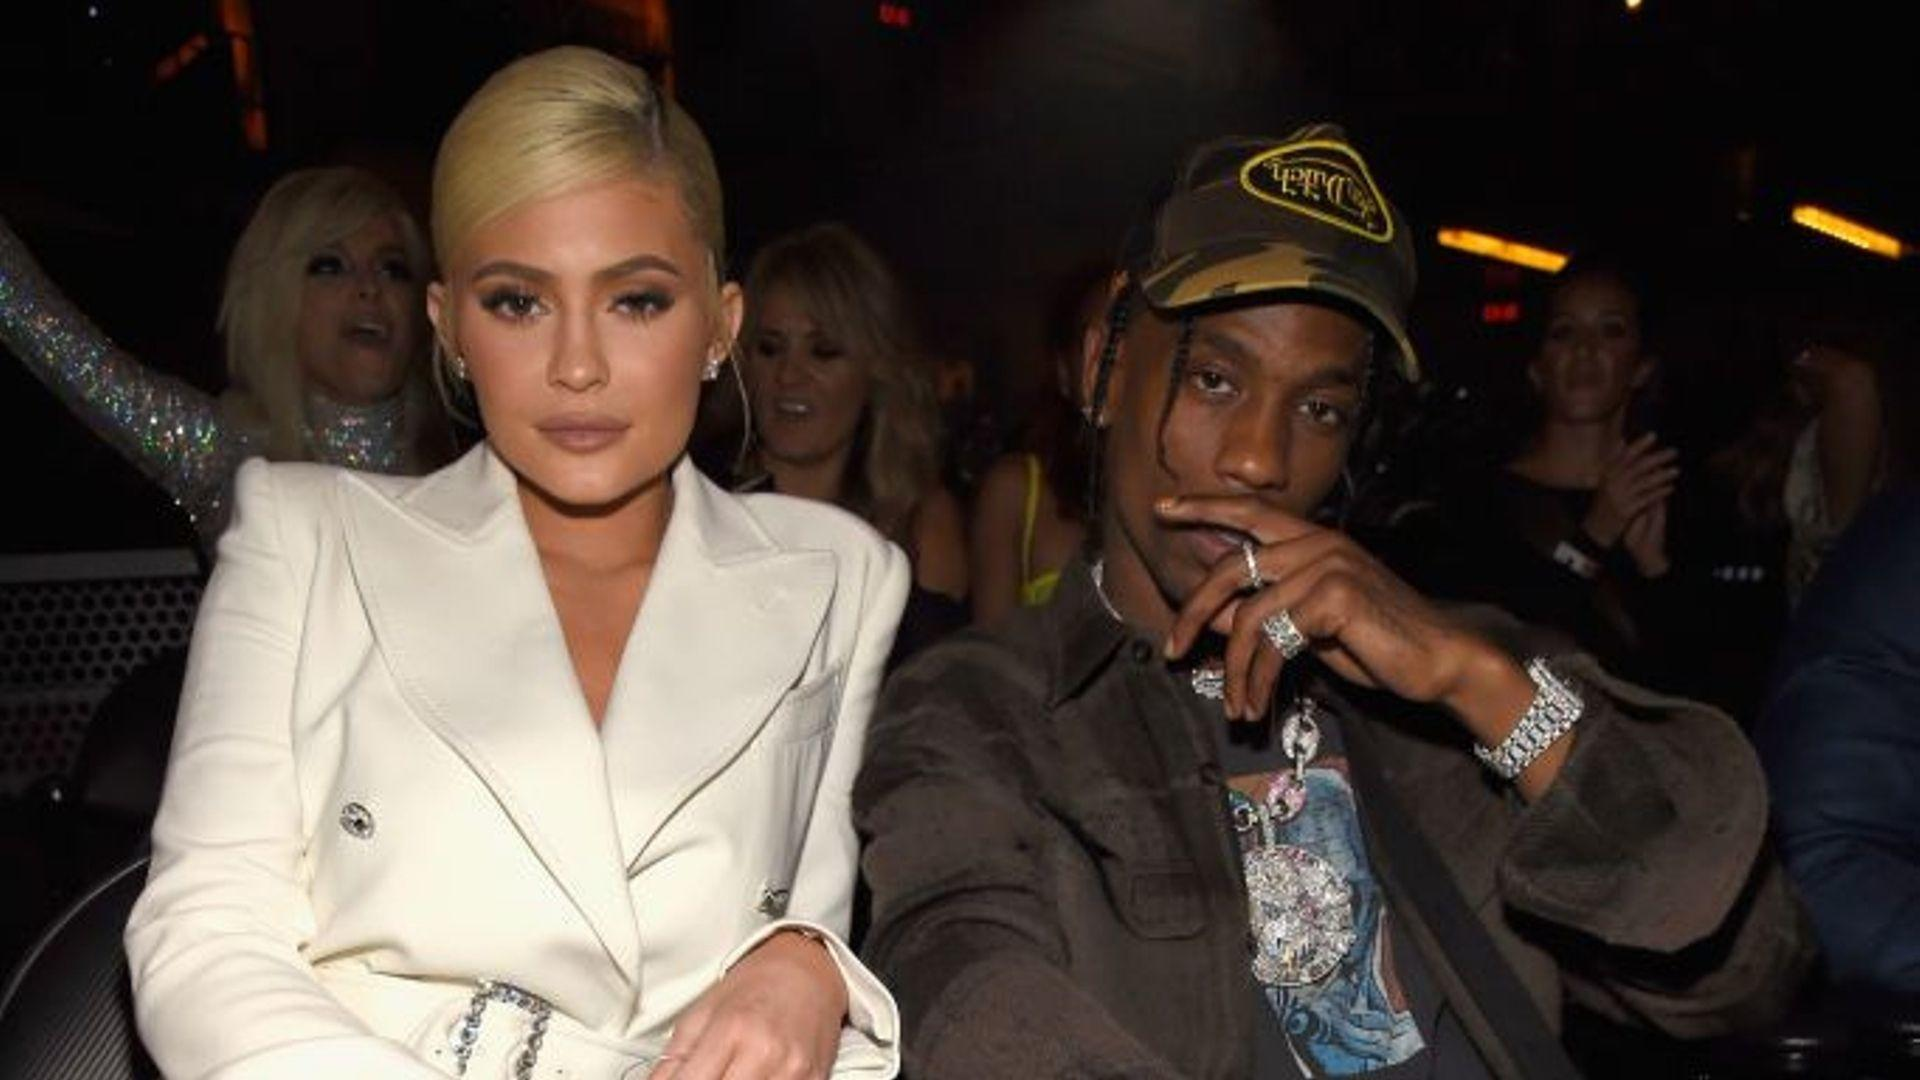 Fans Think Kylie Jenner Was Spotted In Travis Scott's Instagram Story And The Evidence Adds Up